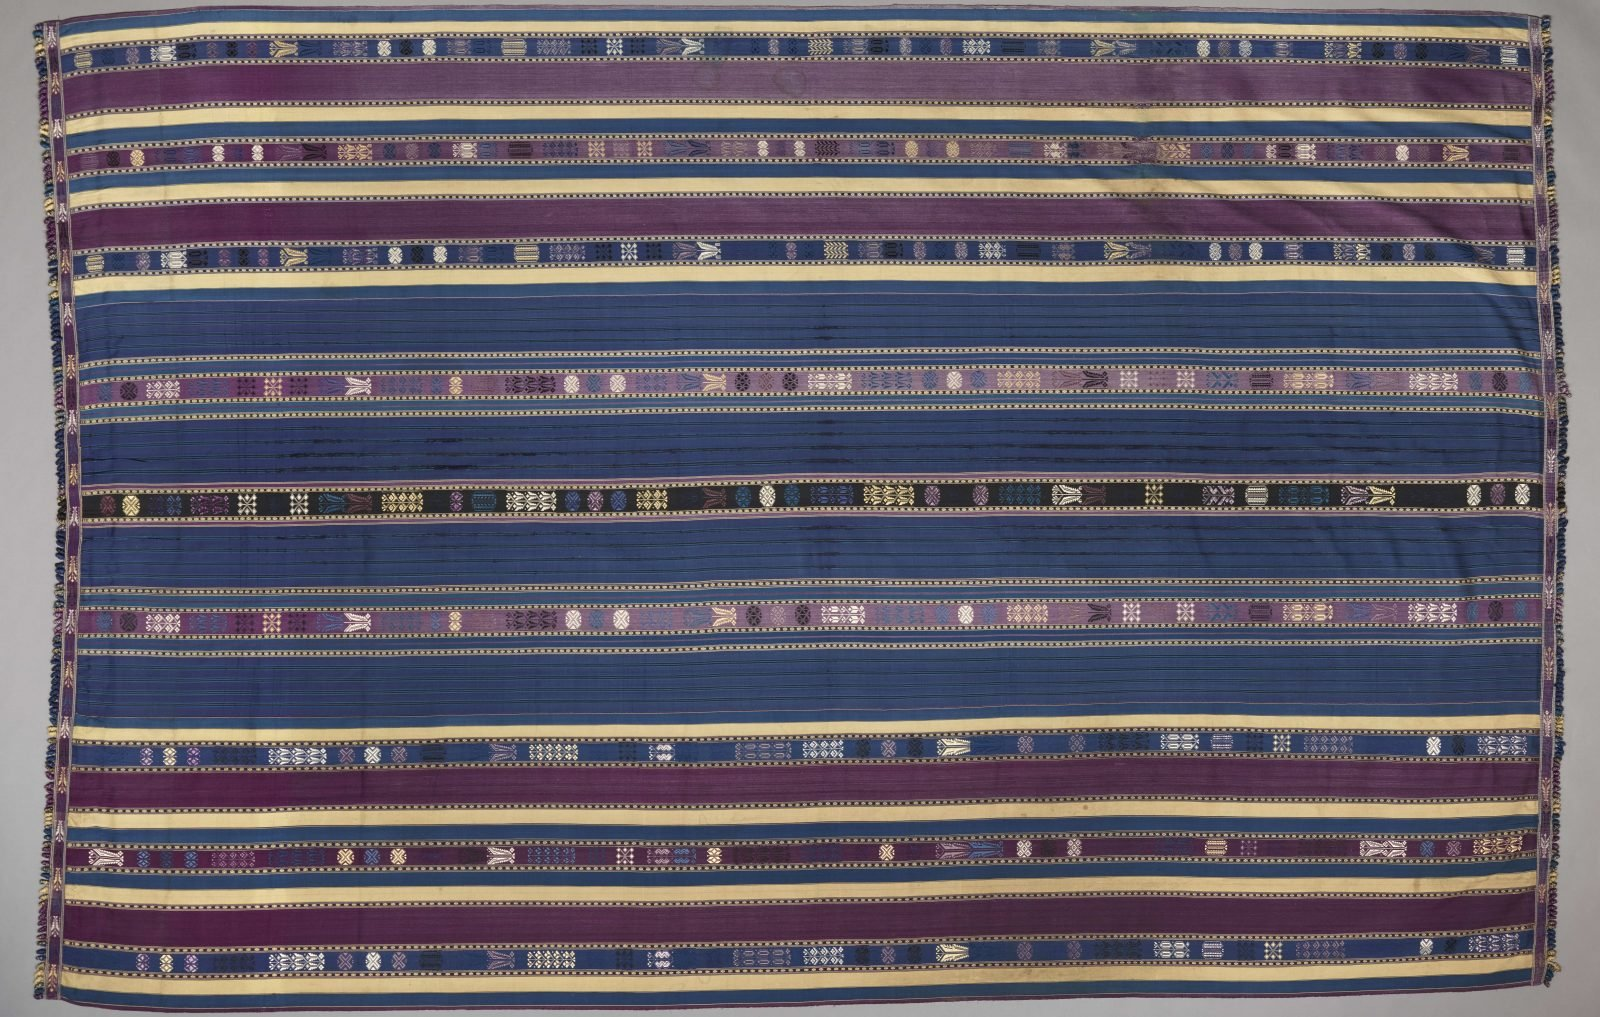 Lamba akotifahana, Madagascar, Malagasy peoples, Merino group, mid- to late 19th century, silk, Dallas Museum of Art, Textile Purchase Fund, 2019.75.